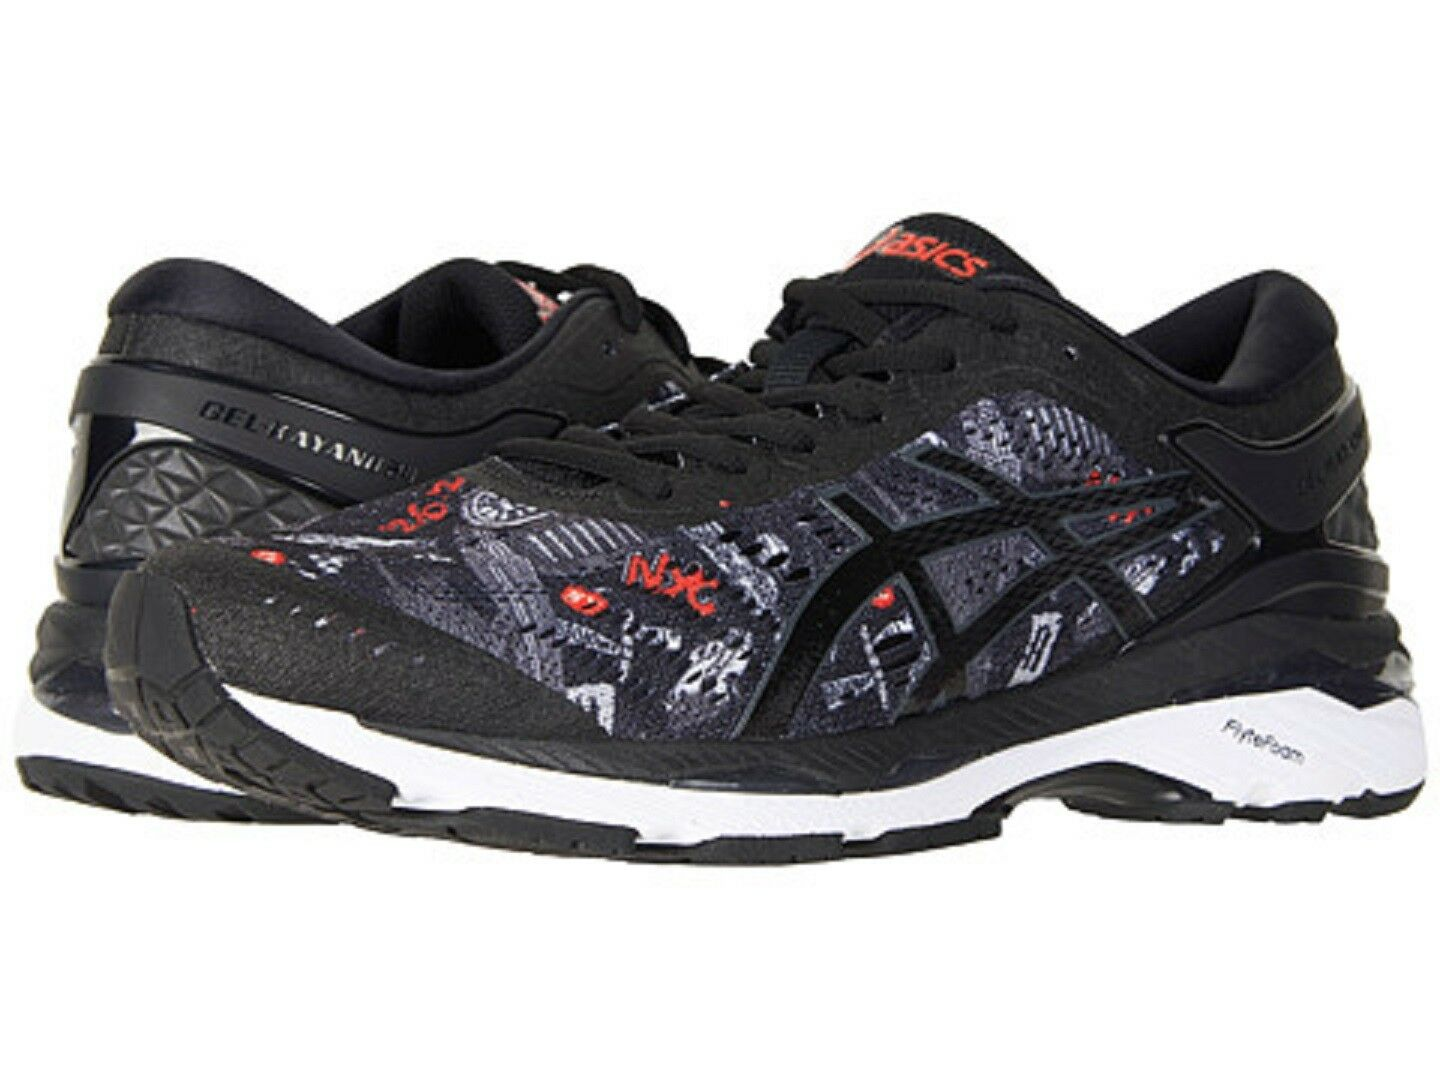 ASICS T7J9N.9099 GEL KAYANO 24 NYC Wmn's Price reduction Twenty/Six/Two Mesh Running Shoes best-selling model of the brand